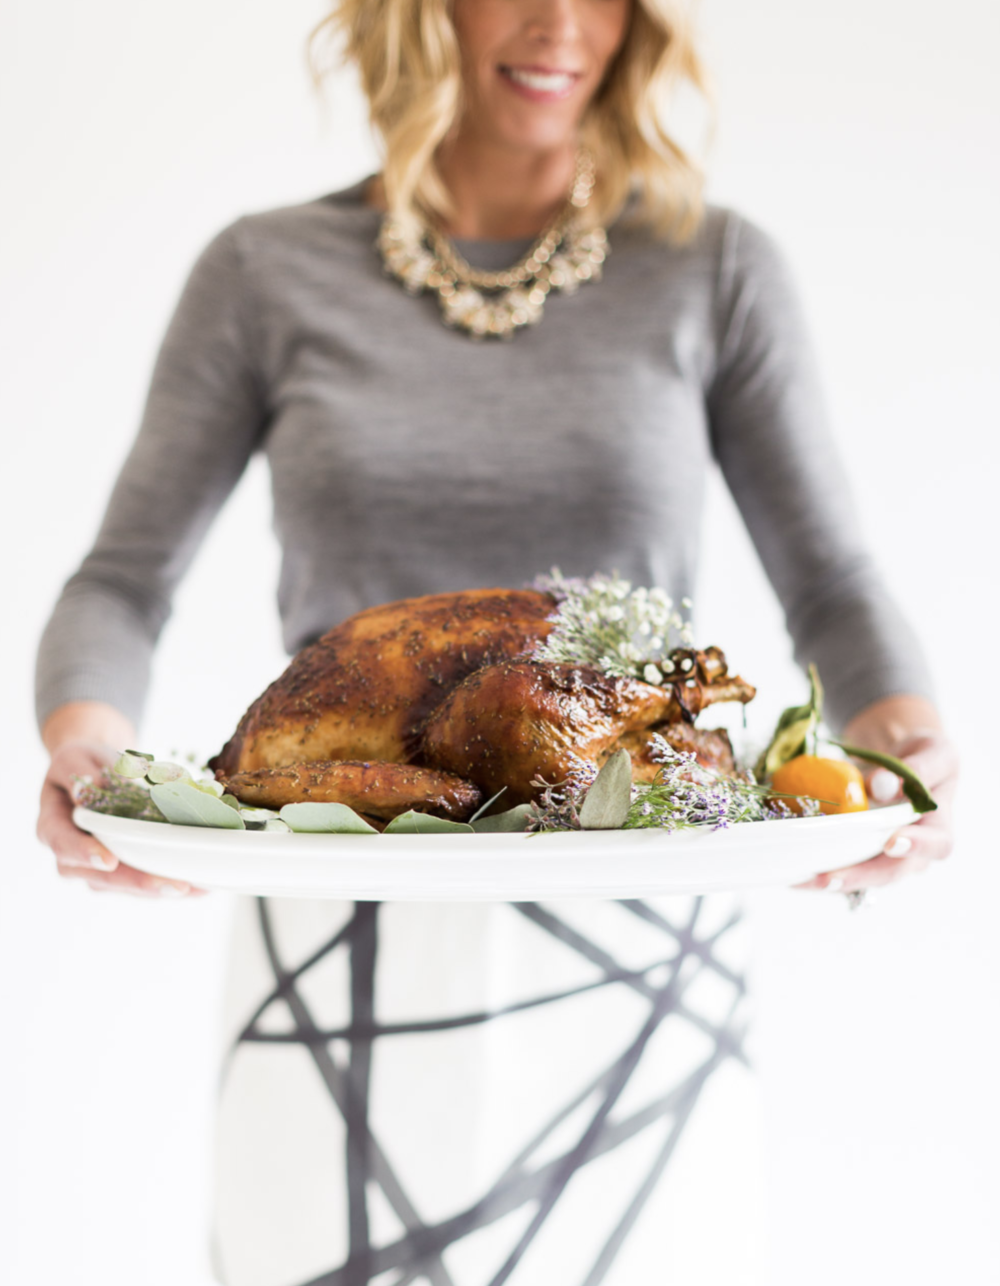 The season to - gather around the table is here. I cannot wait to share good food and good memories with all of my family and friends. To make your Thanksgiving planning a little easier, I have complied all of my Thanksgiving content into one place for you. That's right! All my recipes, tablescapes and outfit inspiration for Thanksgiving all on one page. Whether you are looking to plan your Thanksgiving menu, decorate your Thanksgiving table, or pick your outfit for the day, you do not have to look any further than this page.Happy Thanksgiving!Xx,Landynphoto | alyssa rosenheck photography